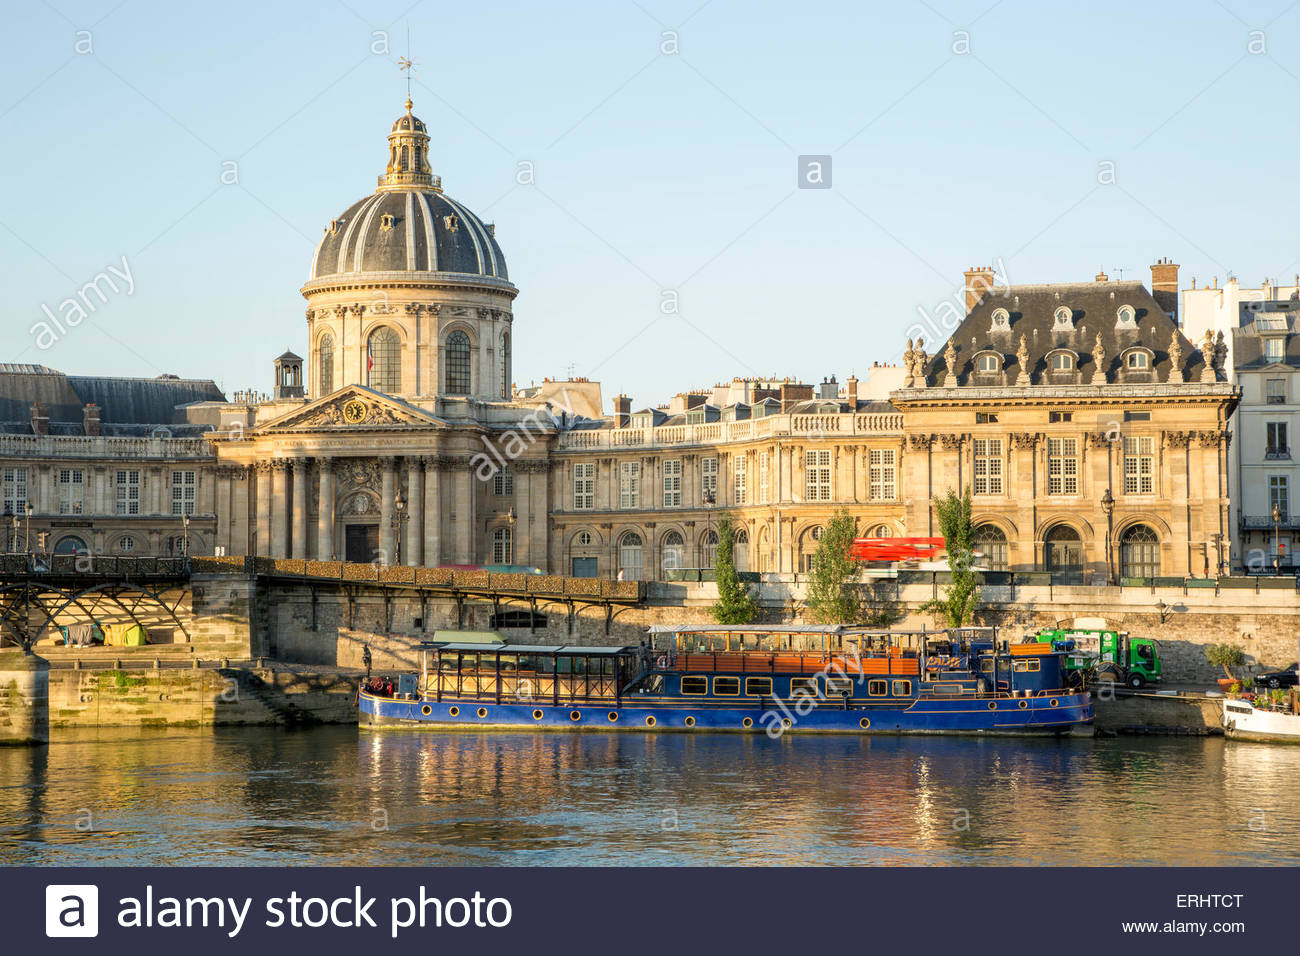 Institut de France , View from Pont des Artes Bridge, Paris, France - Stock Image